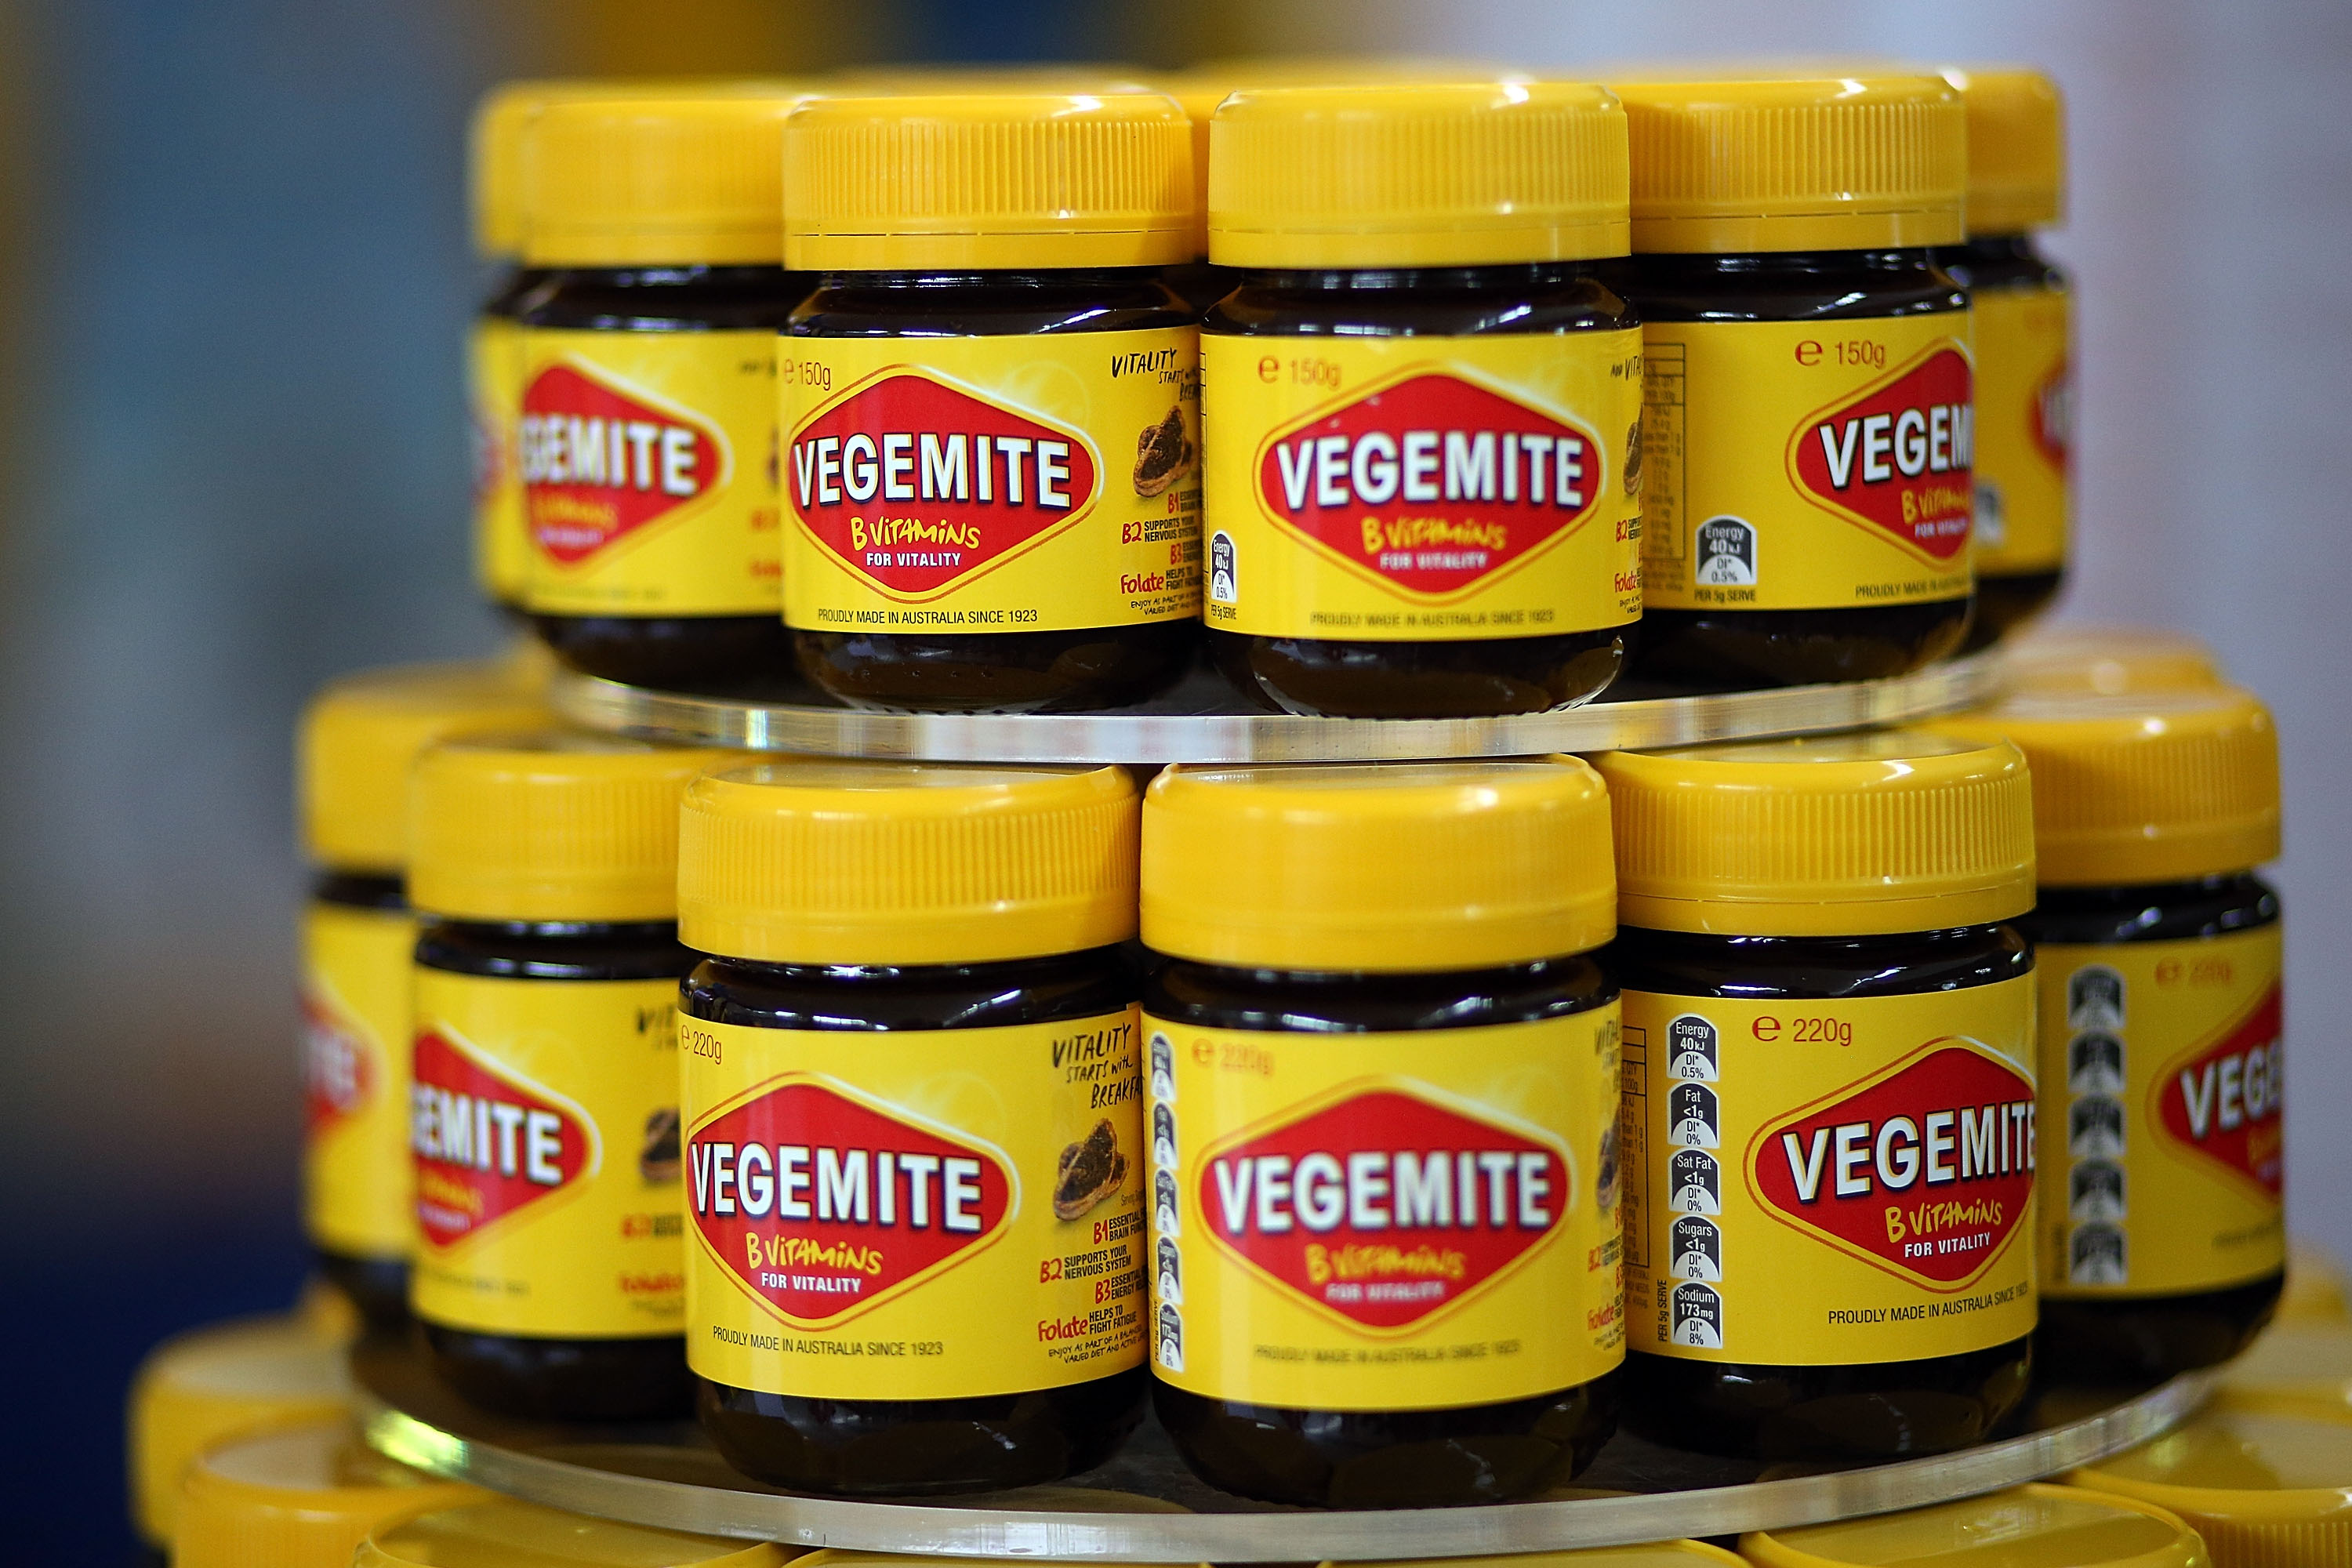 Drink on the Cheap With Home-Brewed Vegemite Beer